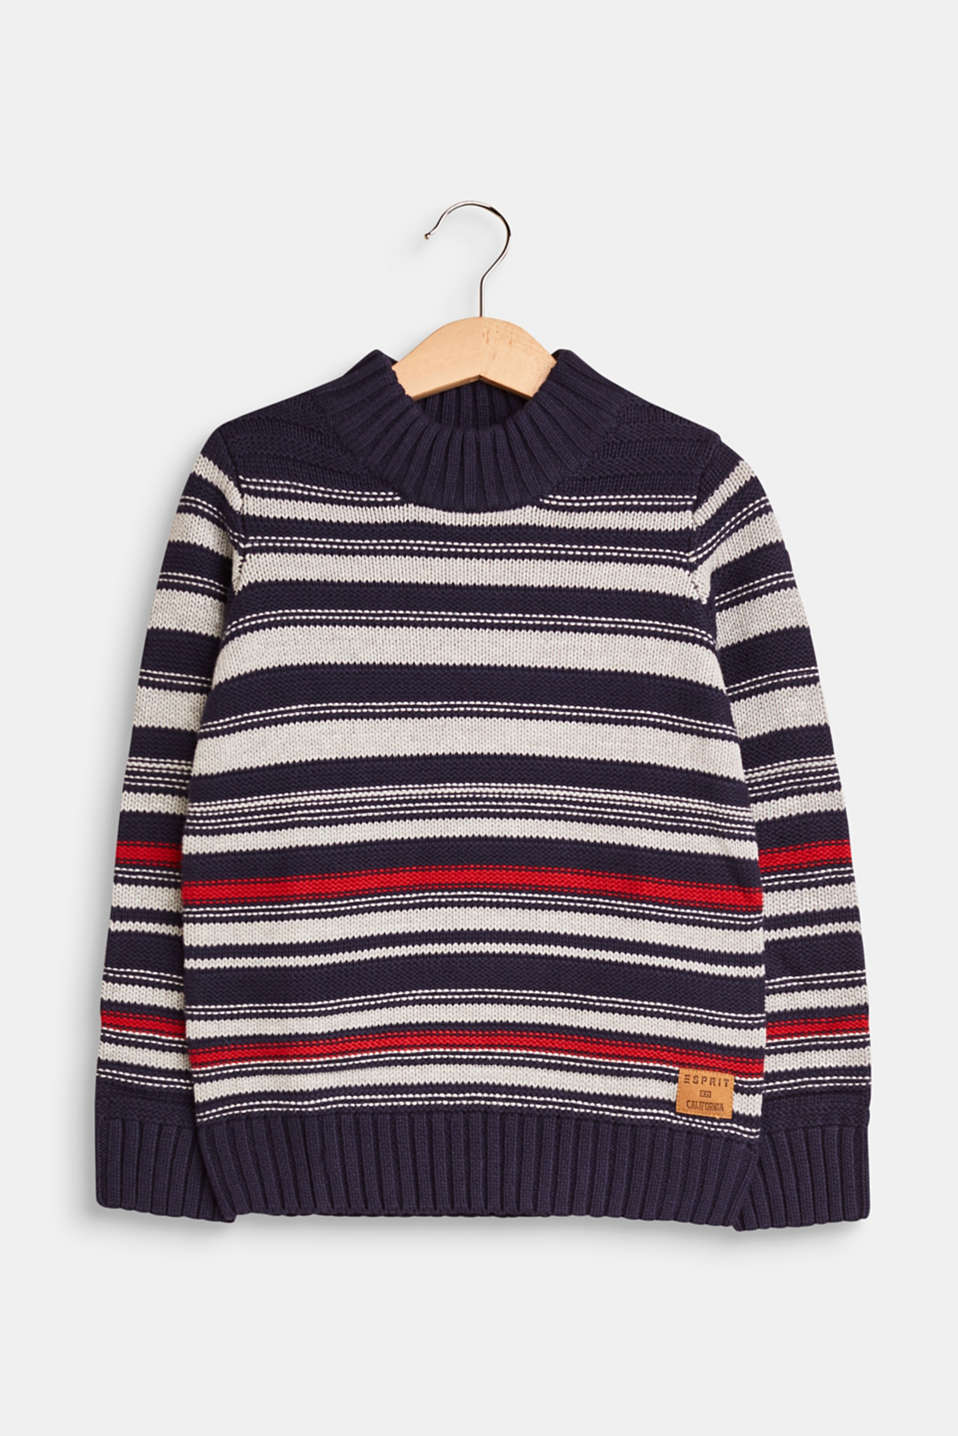 This jumper has everything a perfect winter companion needs: a thick, ribbed collar, distinctive textured stripes and soft yarn composed of pure cotton.